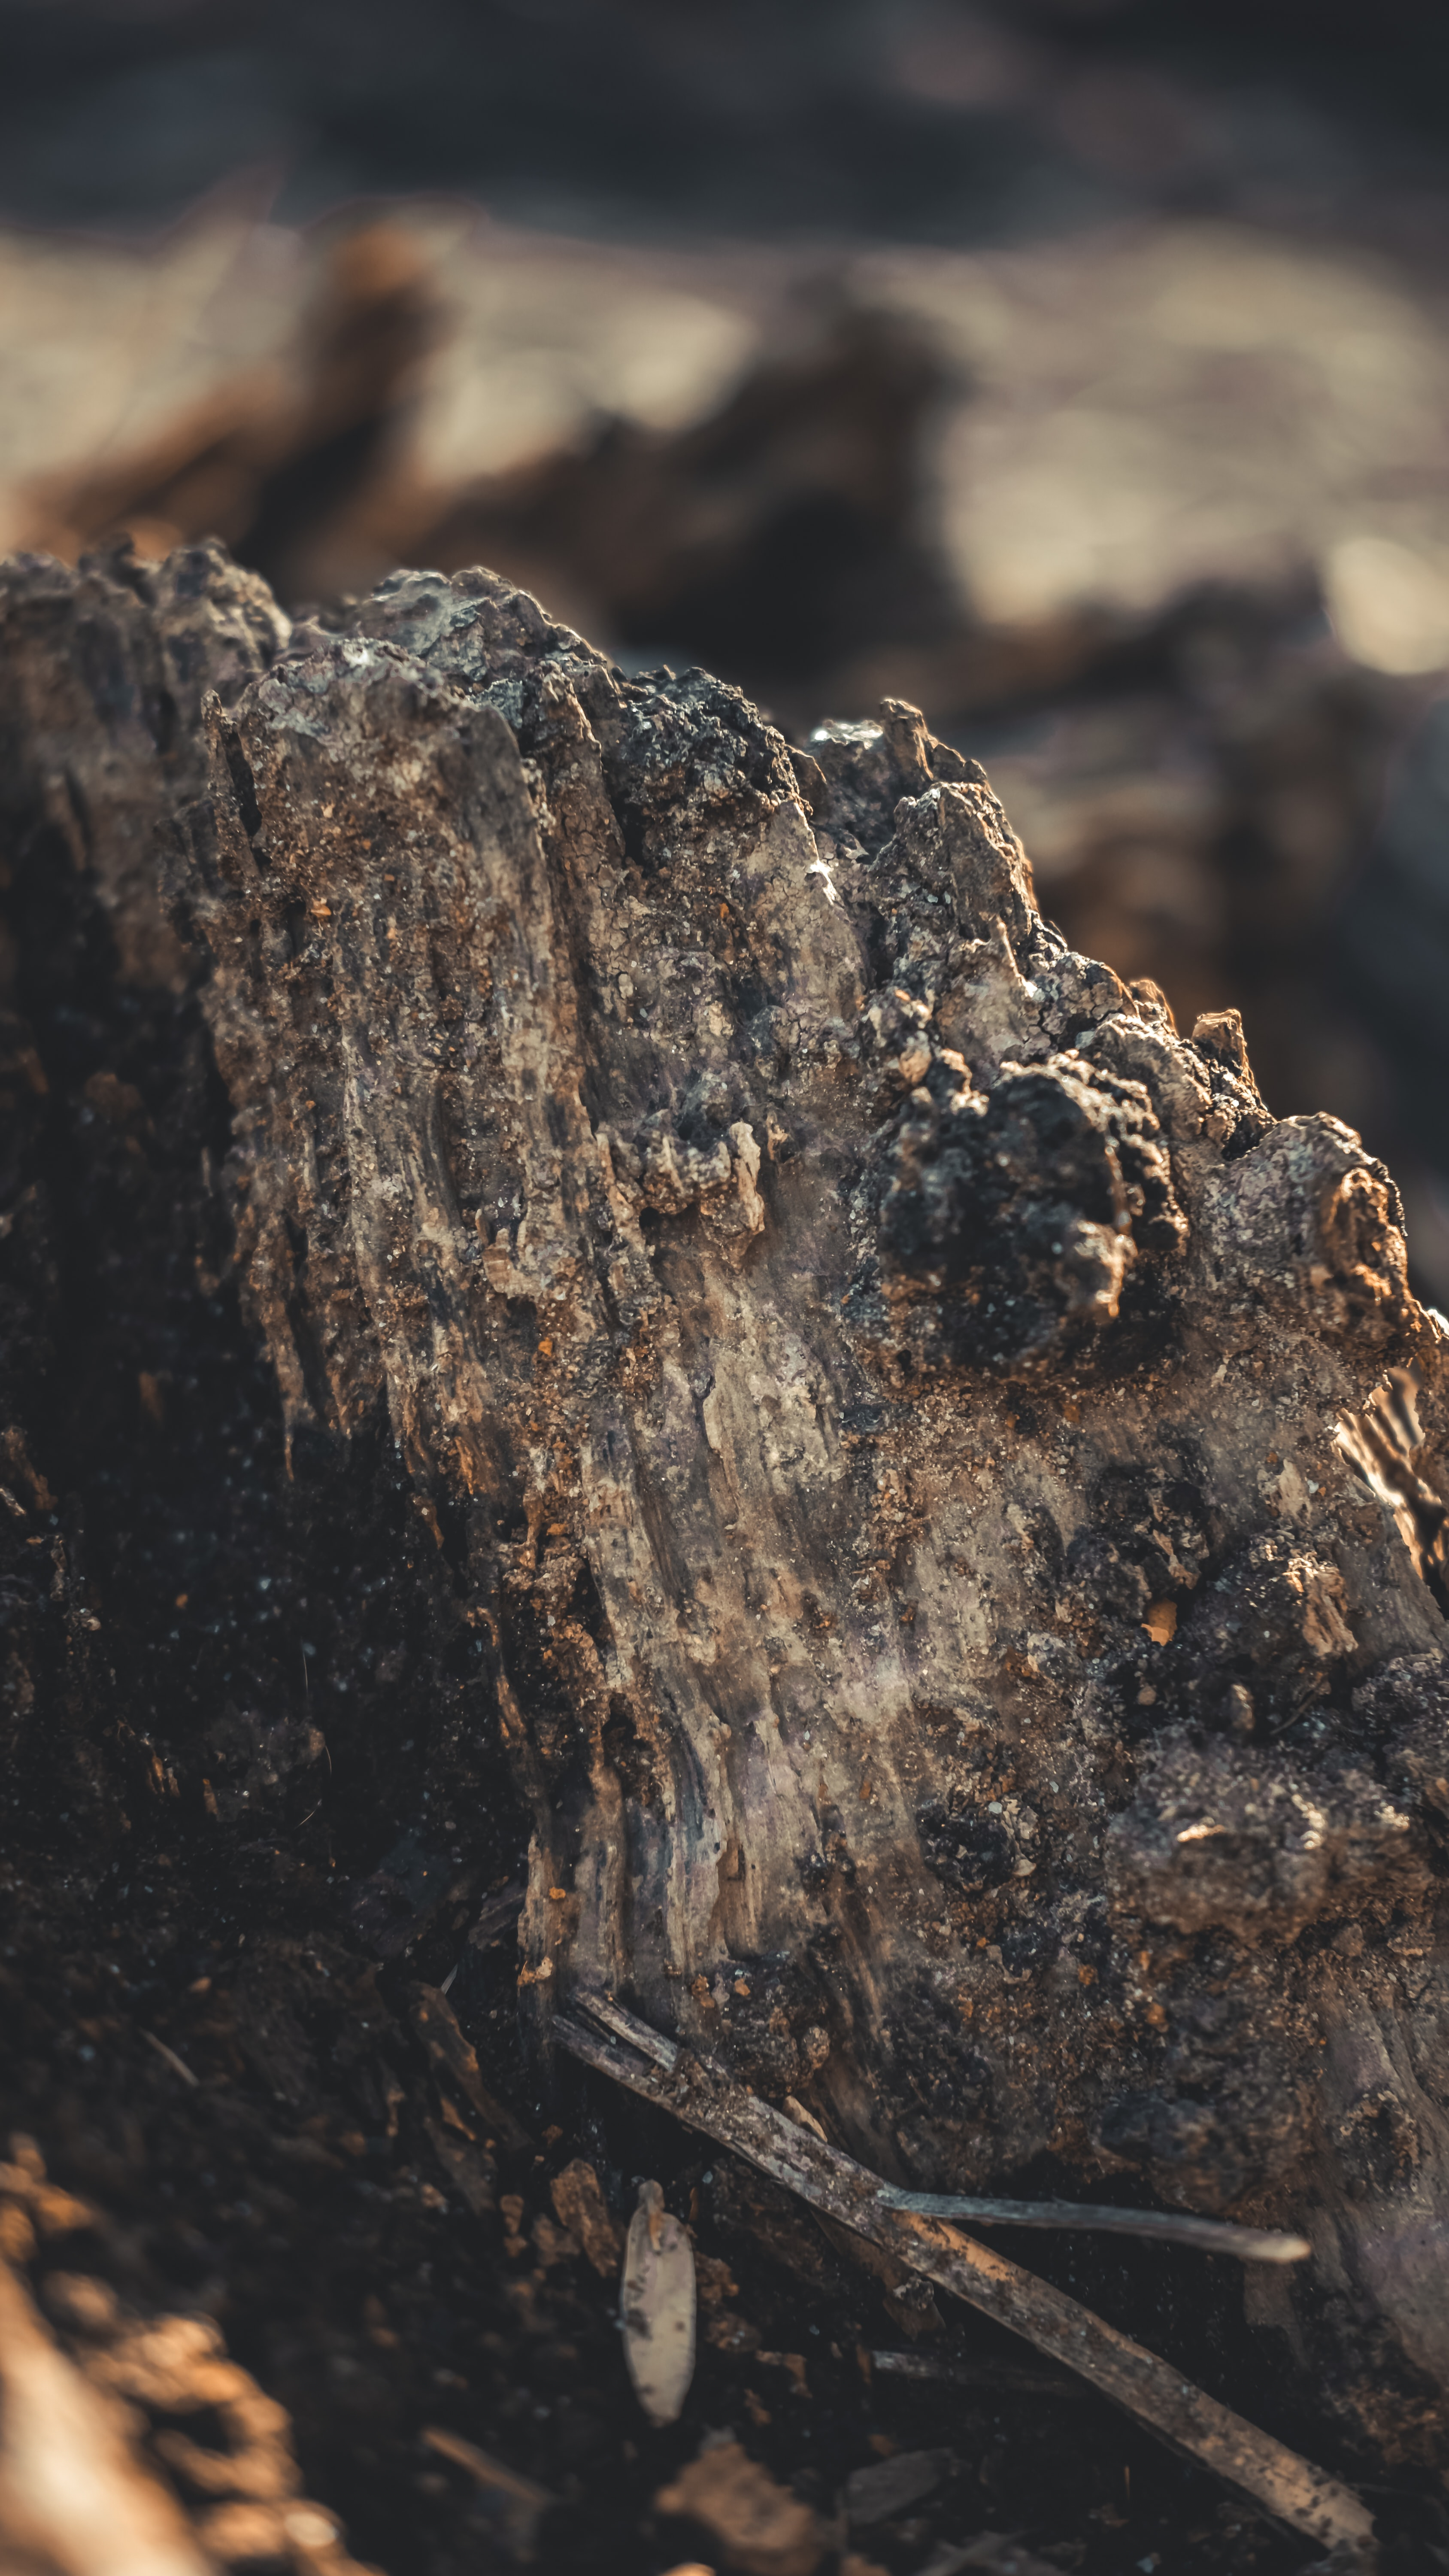 gray mineral rock close up photography